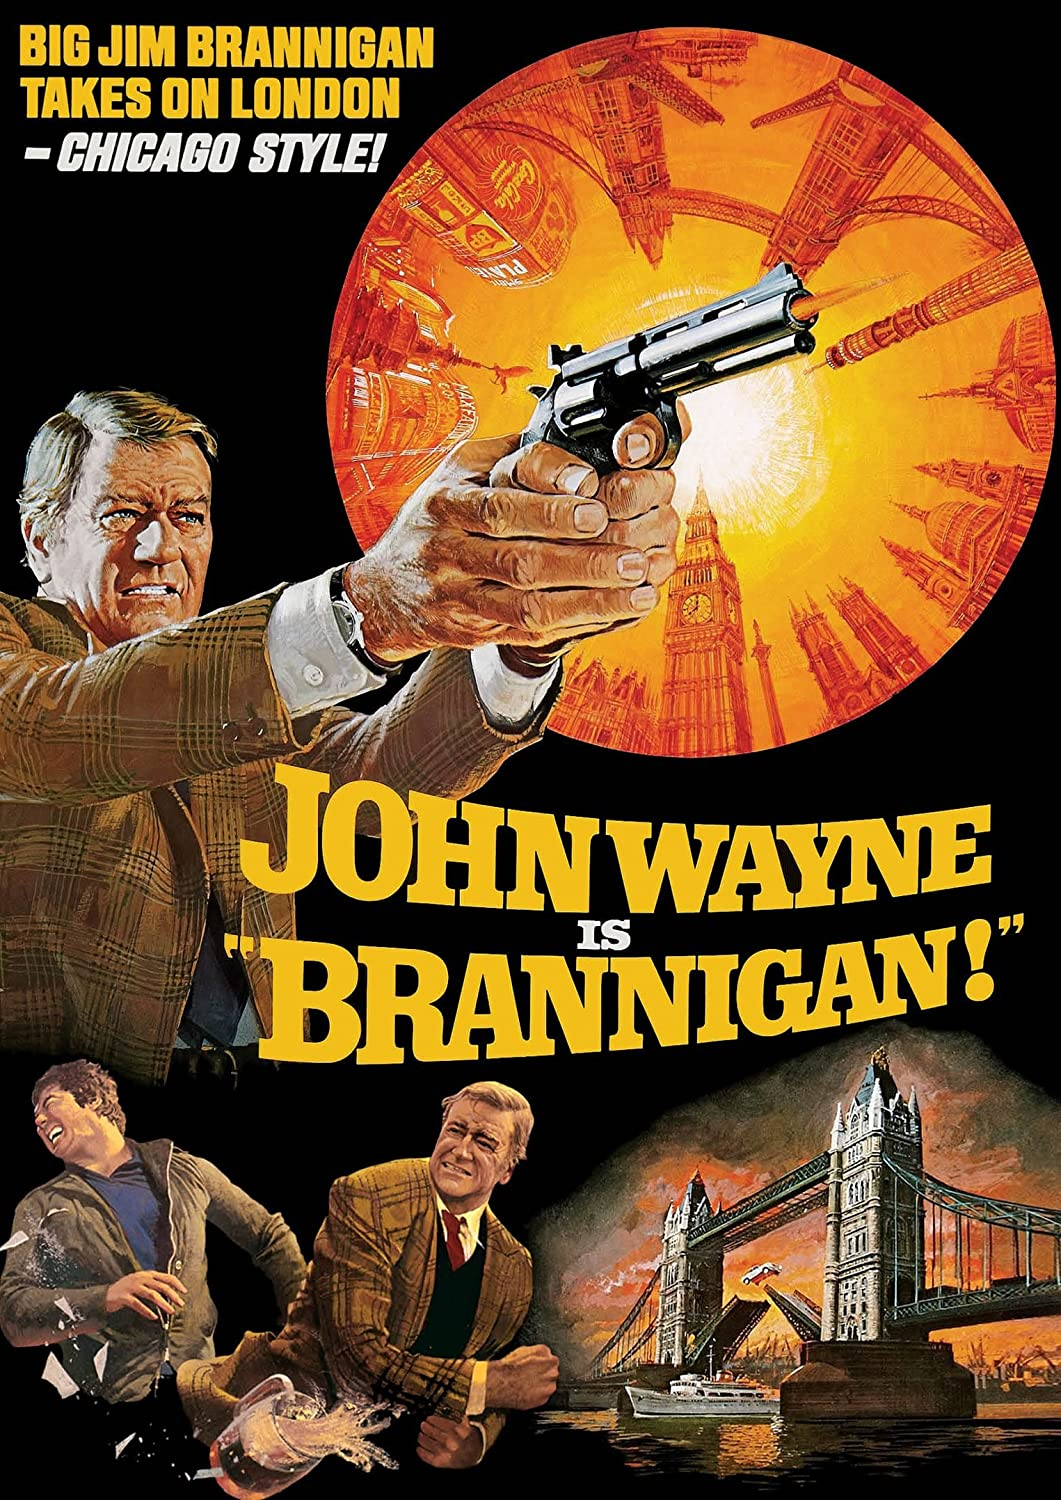 film brannigan